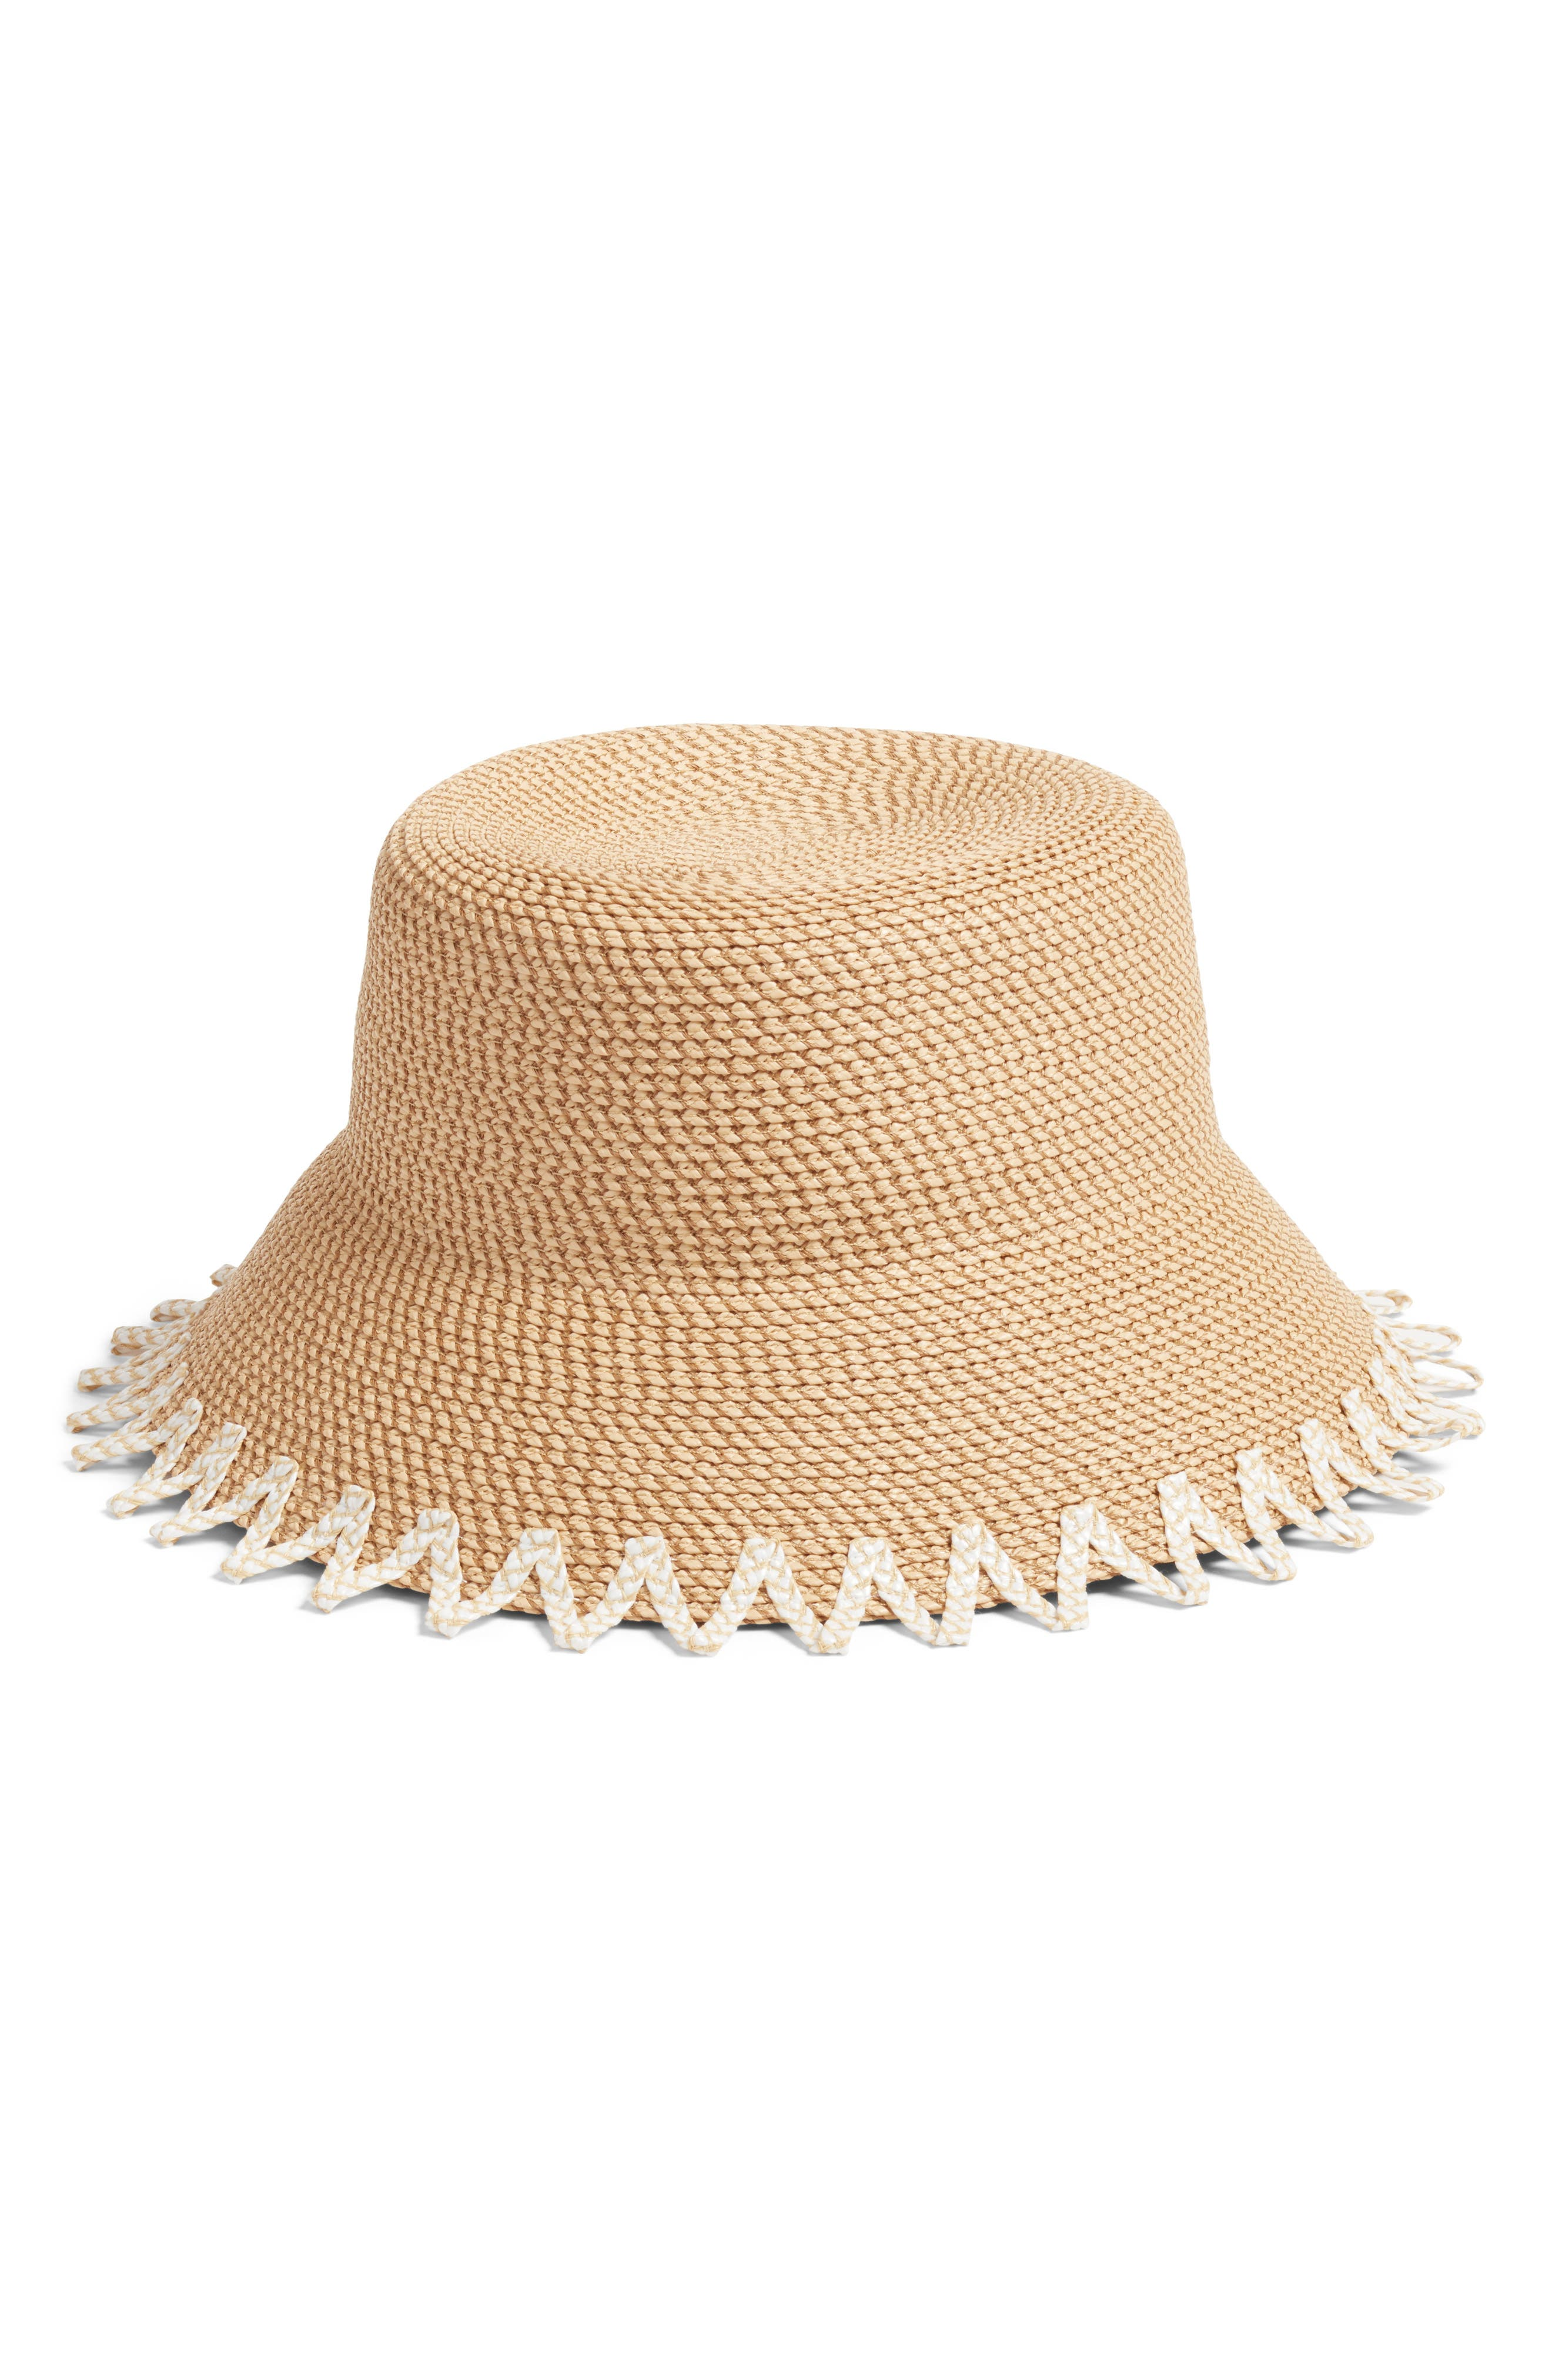 Eloise Squishee<sup>®</sup> Bucket Hat,                         Main,                         color, PEANUT MIX